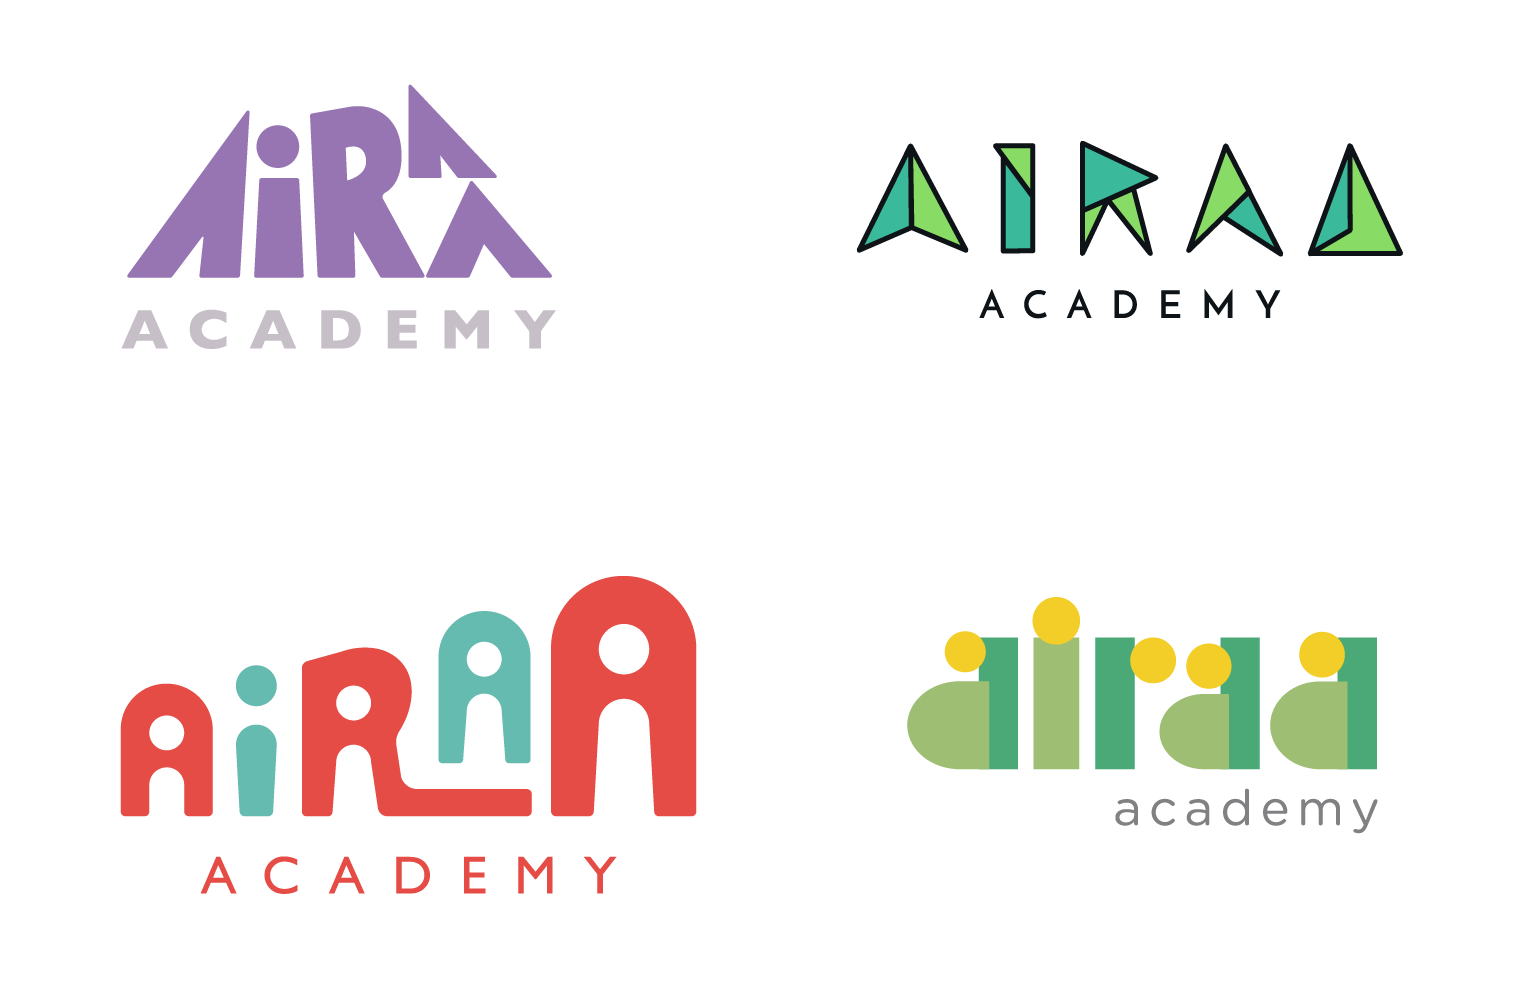 Education Airaa Rezoant Design LOGOS 13